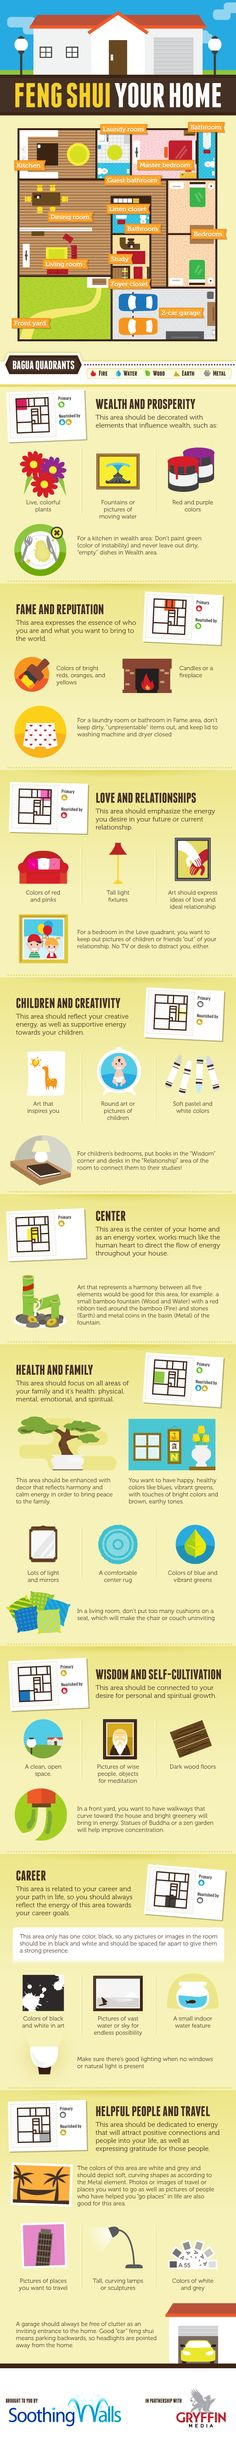 Infographic: Five easy Feng Shui suggestions to bring good energy to your home.